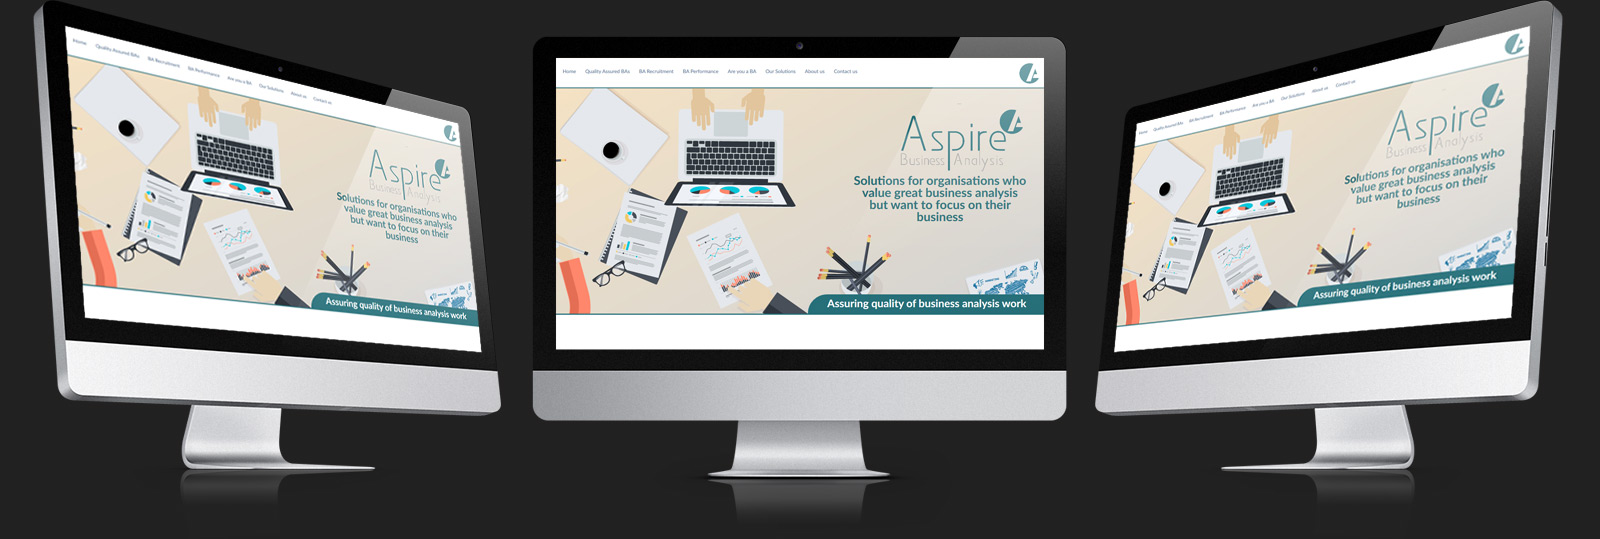 Stamford Web Design - Aspire B A